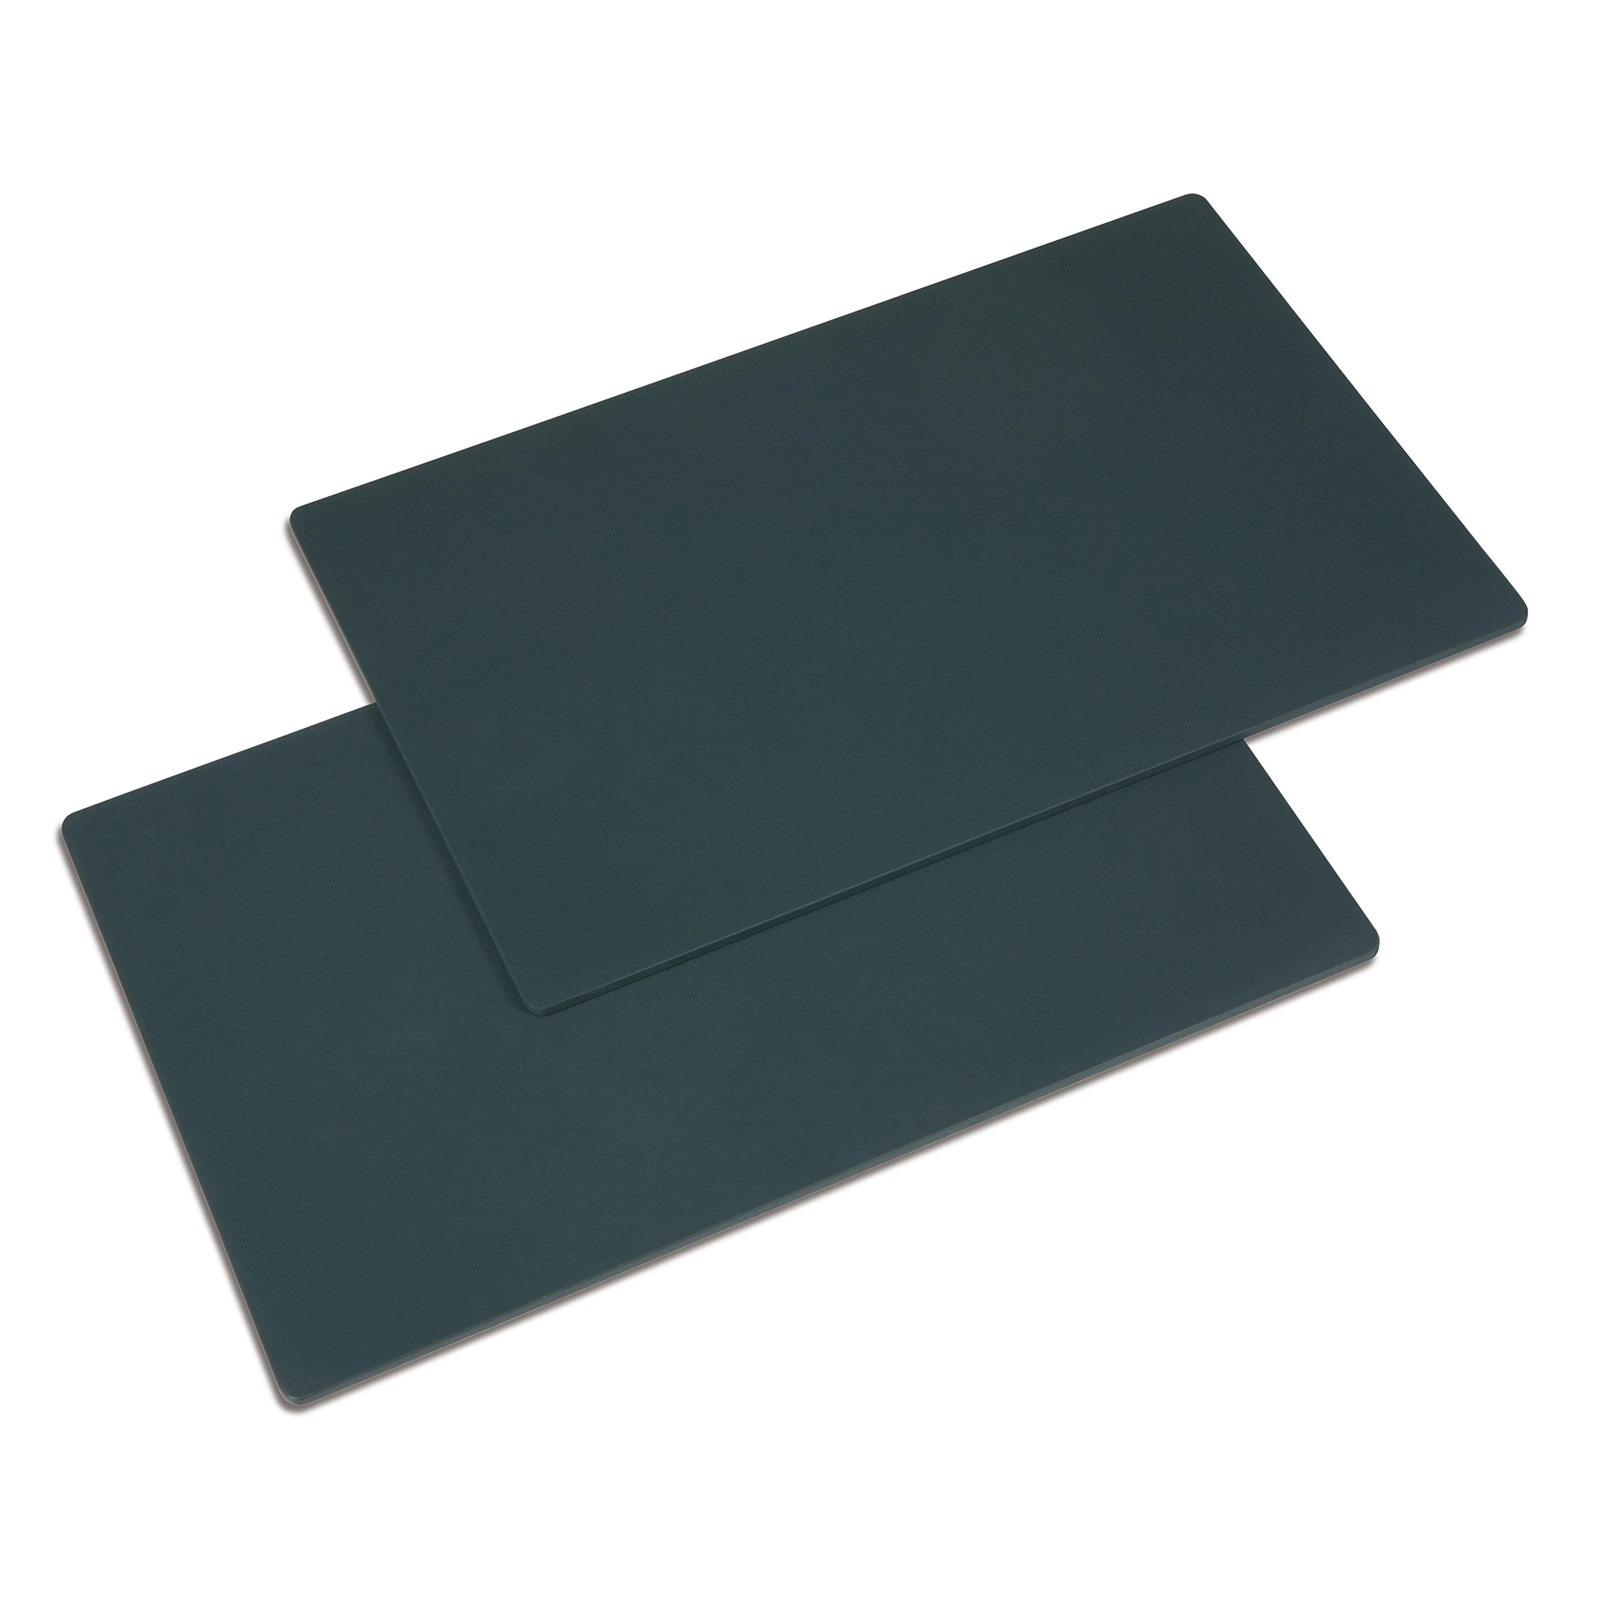 Greenboards Blank: Set Of 2